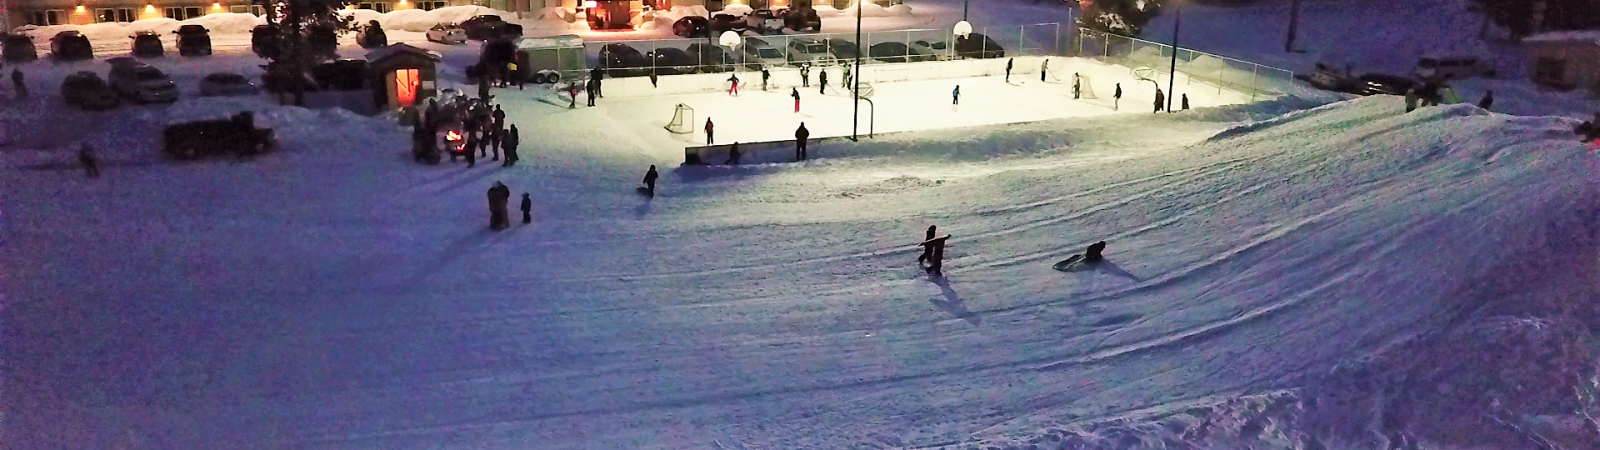 Pioneer Park sled hill at night